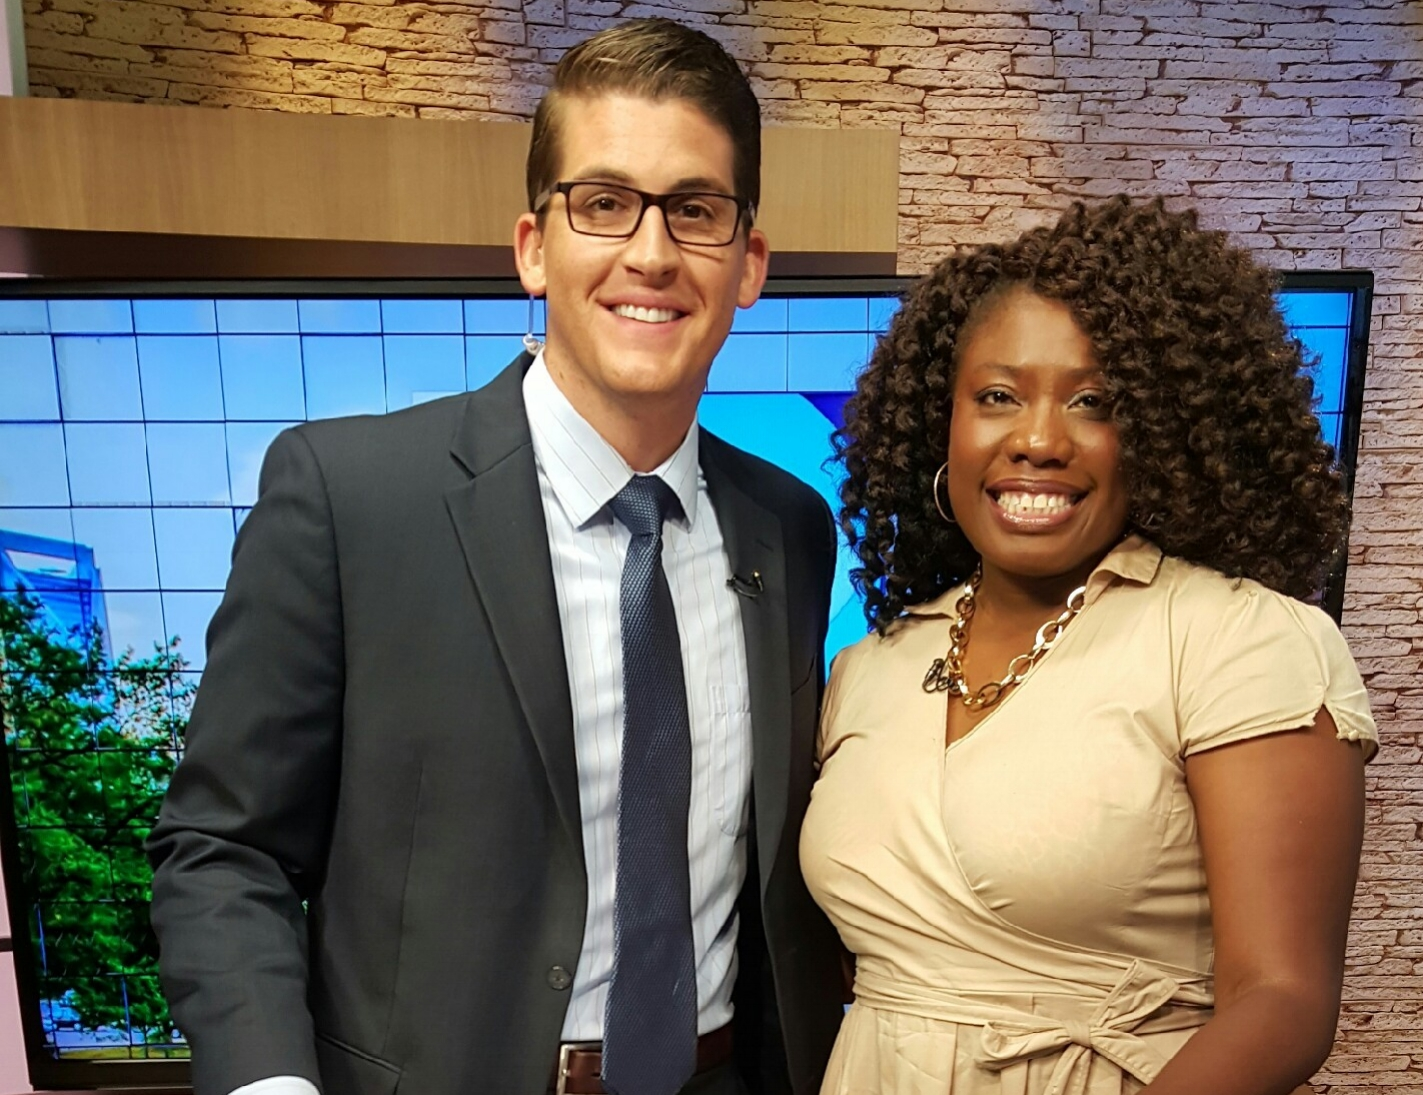 If you're having trouble discovering your purpose in life, this segment is just for you. Licensed counselor, Felice Hightower, stopped by WBTV with a rundown of what you can do to help find your purpose.